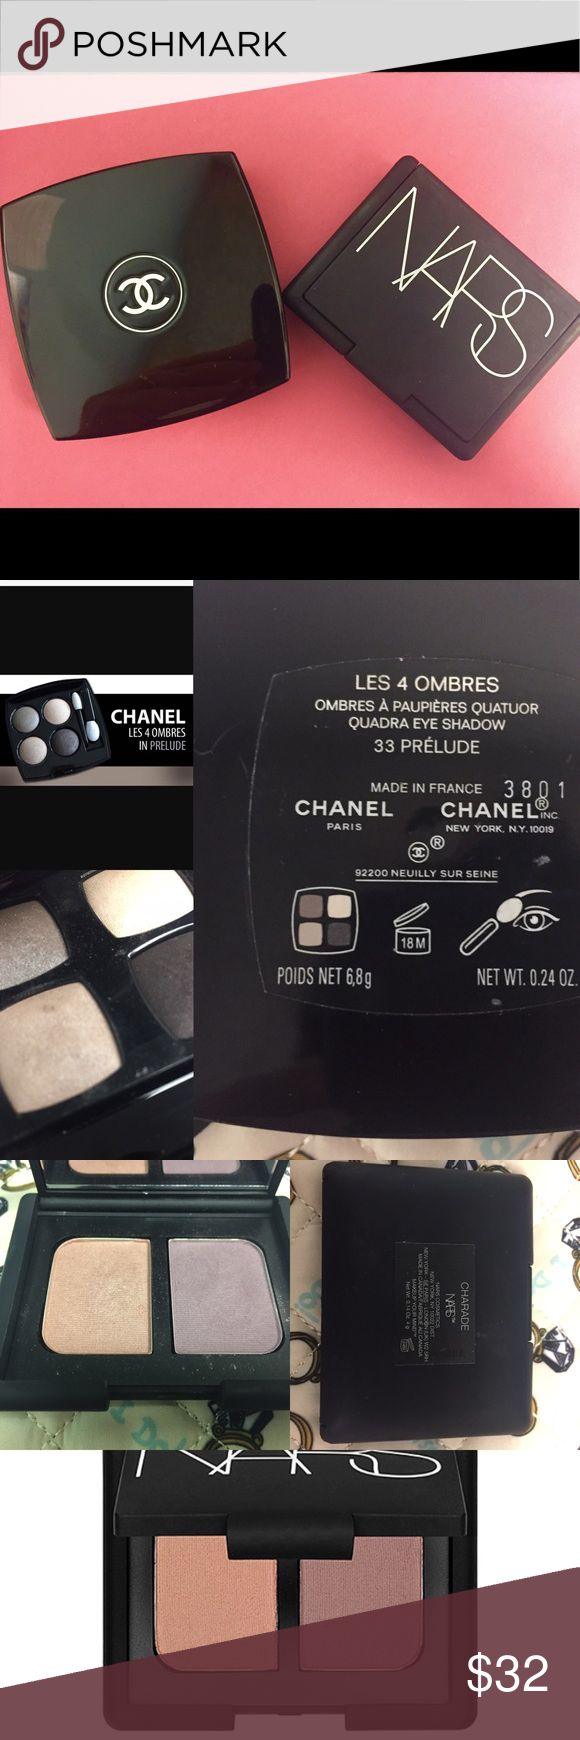 Chanel quad and NARS eyeshadow duo Both quads are being sold together. Have been used a handful of times. The NARS duo has only been swatched two times. Gorgeous, buildable shades that will flatter anyone. The Chanel quad is missing the little brush. CHANEL Makeup Eyeshadow